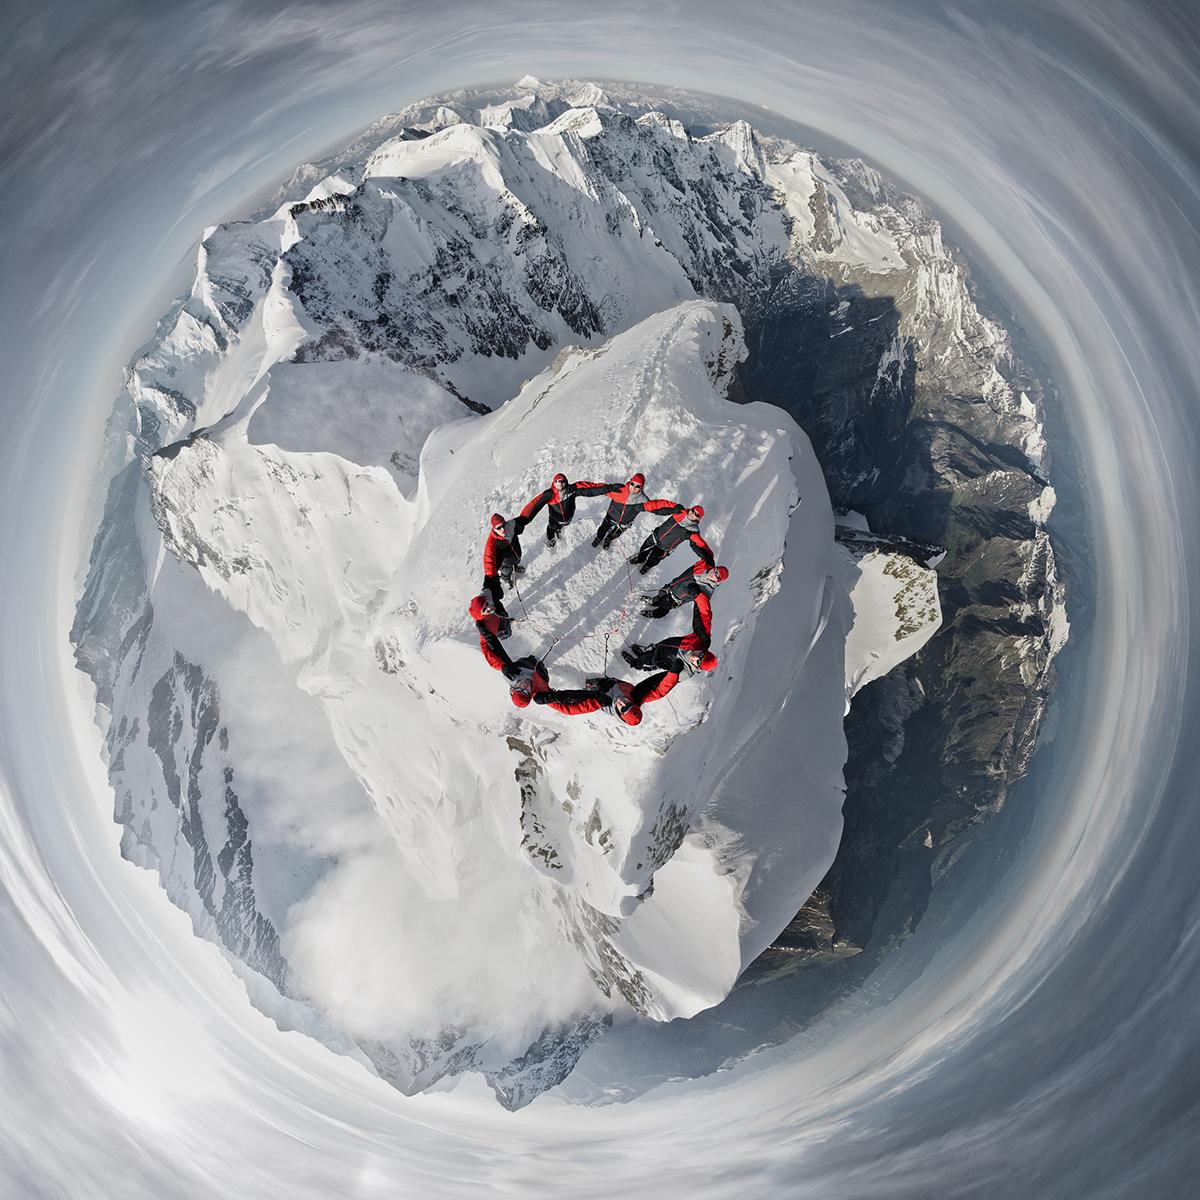 RT @Ripleys: No photoshop here! This amazing photo was taken at the peak of a Swiss mountain with a drone http://t.co/EhlYyLXUZw